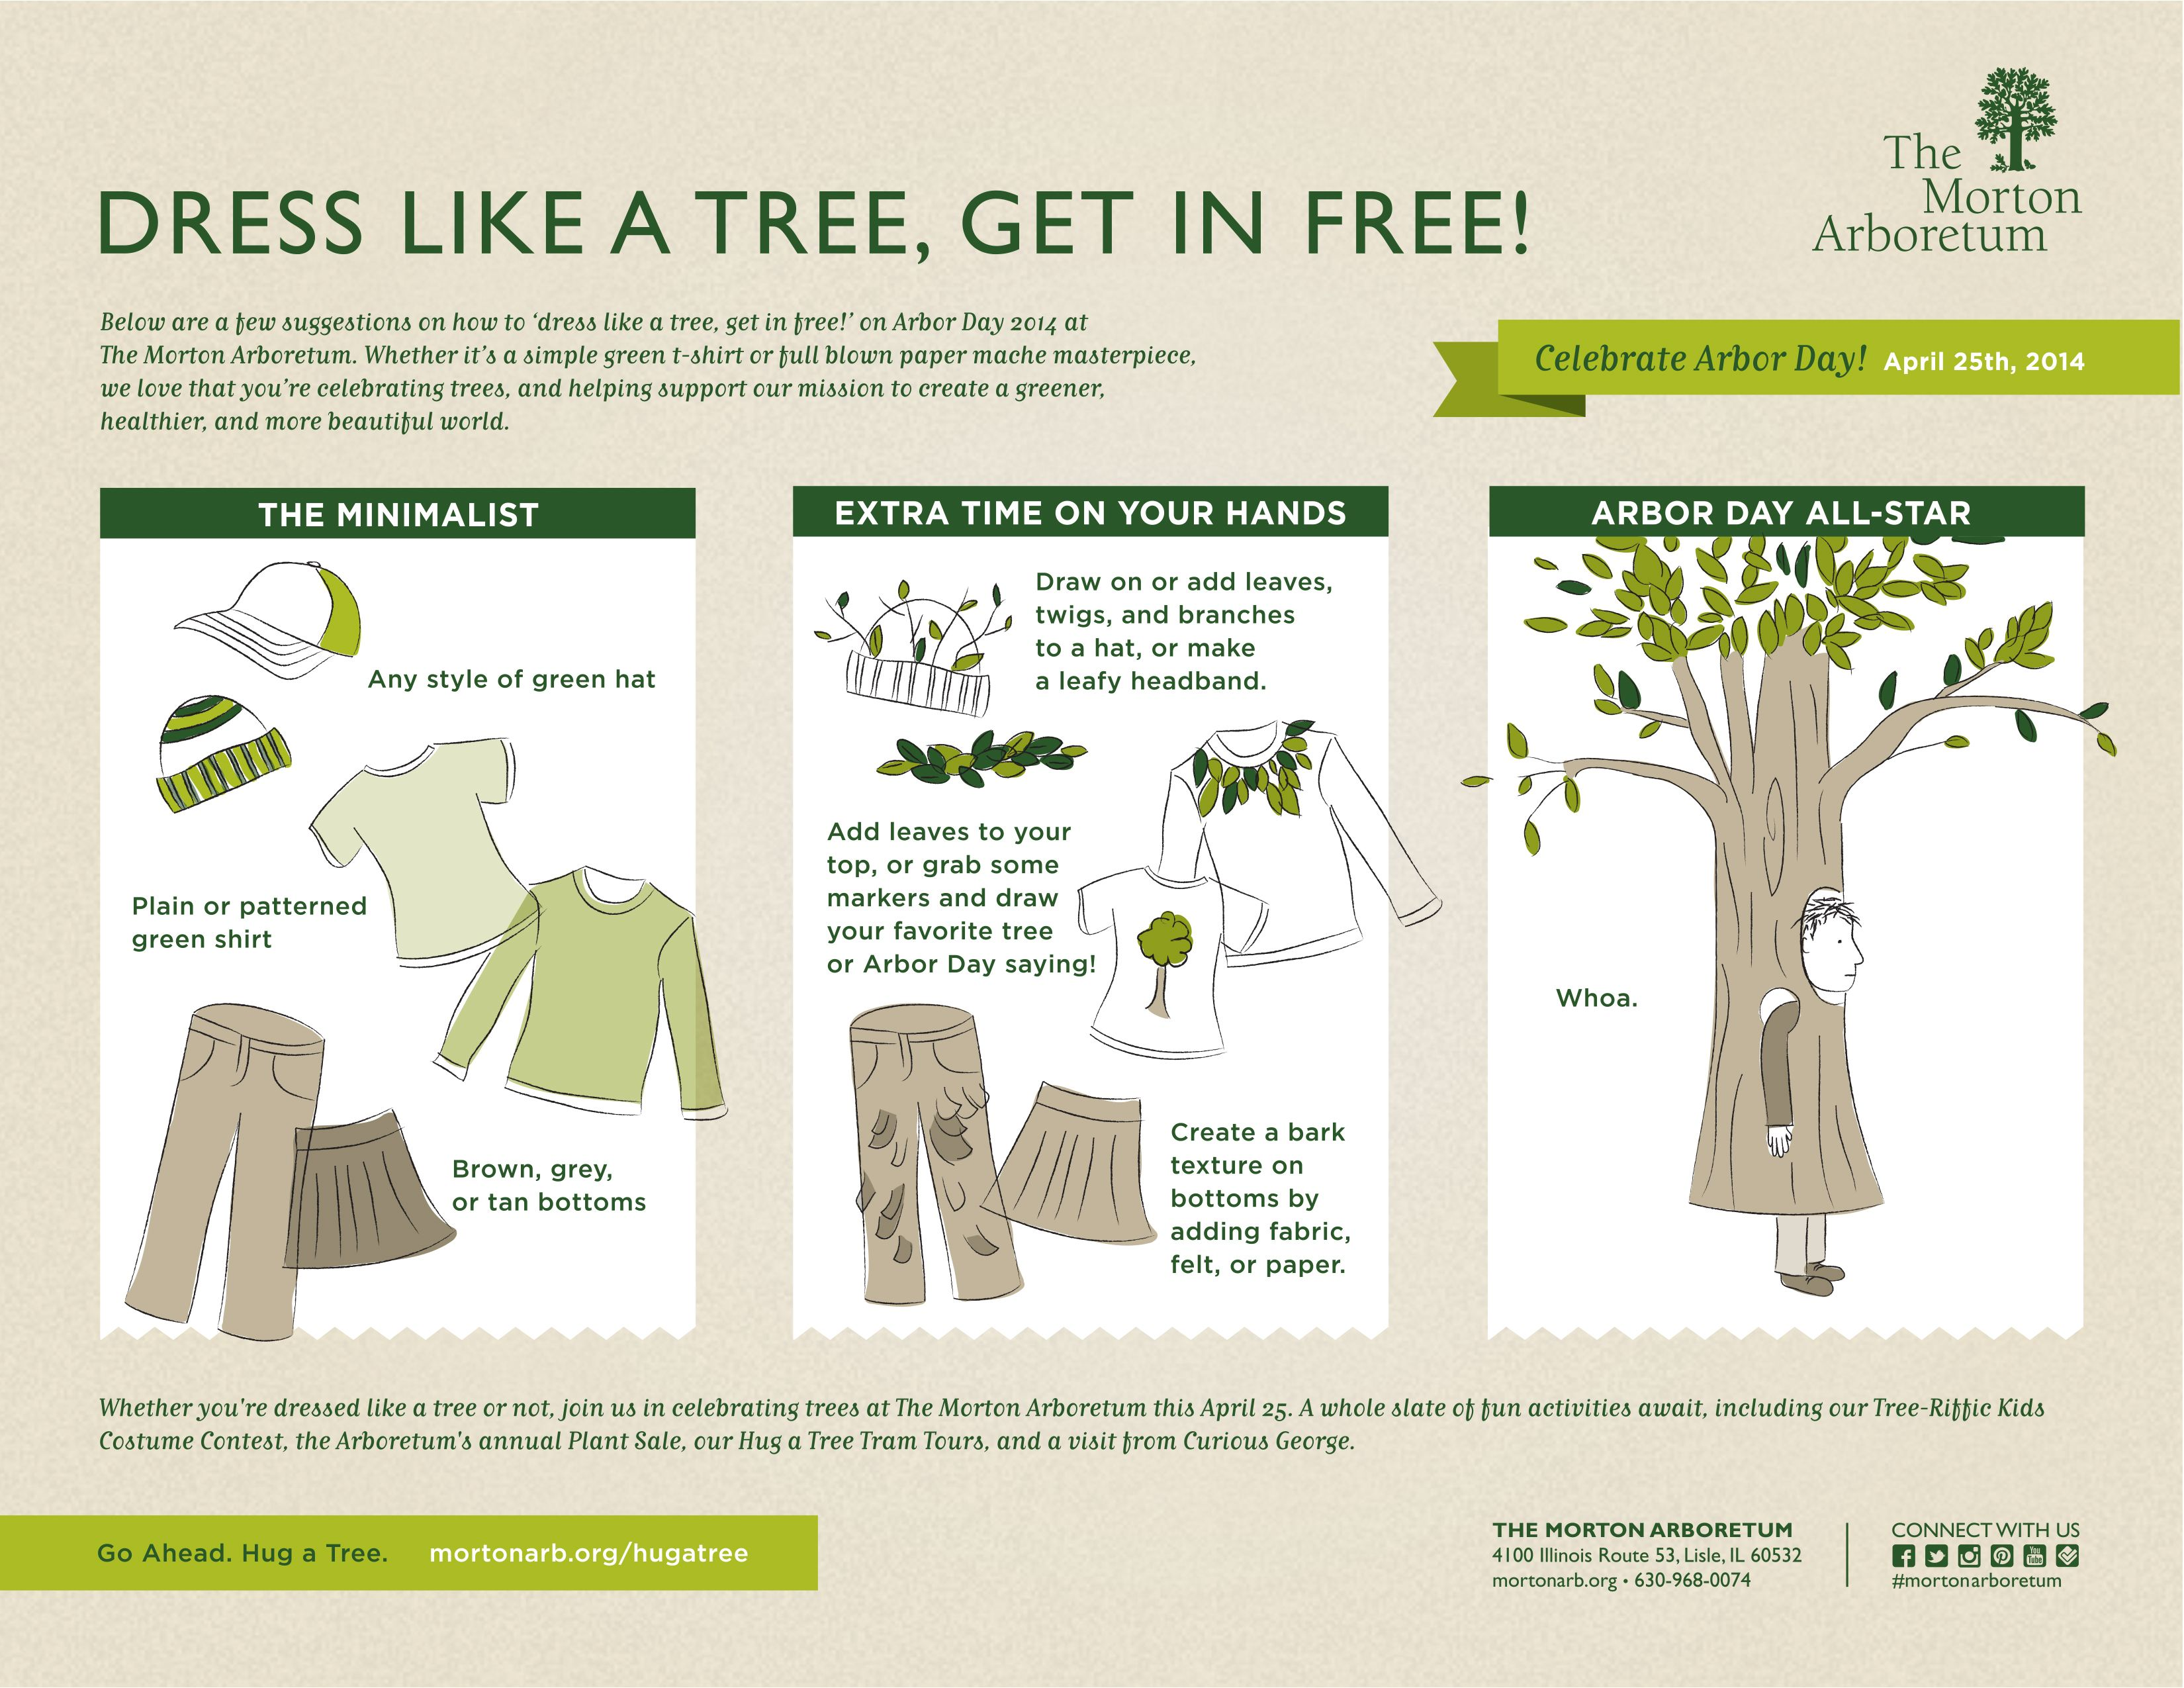 get tips for dressing like a tree and get in free to the morton